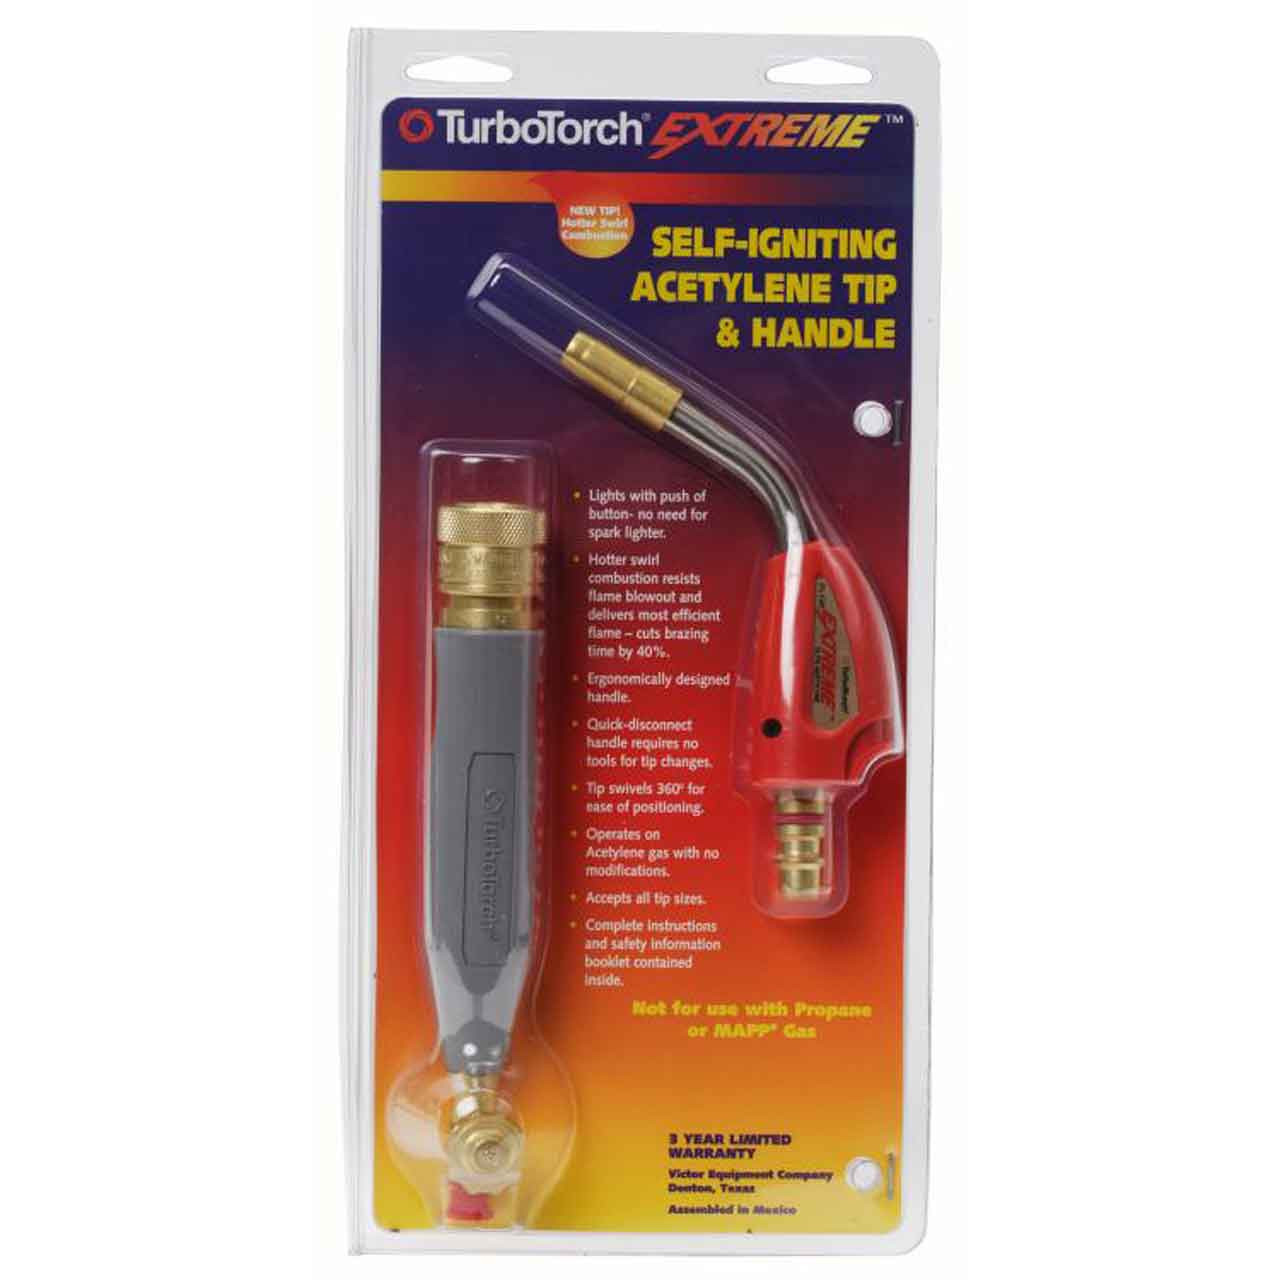 0386-0874 TurboTorch PL-3A Soldering Brazing Self Lighting Acetylene Tip